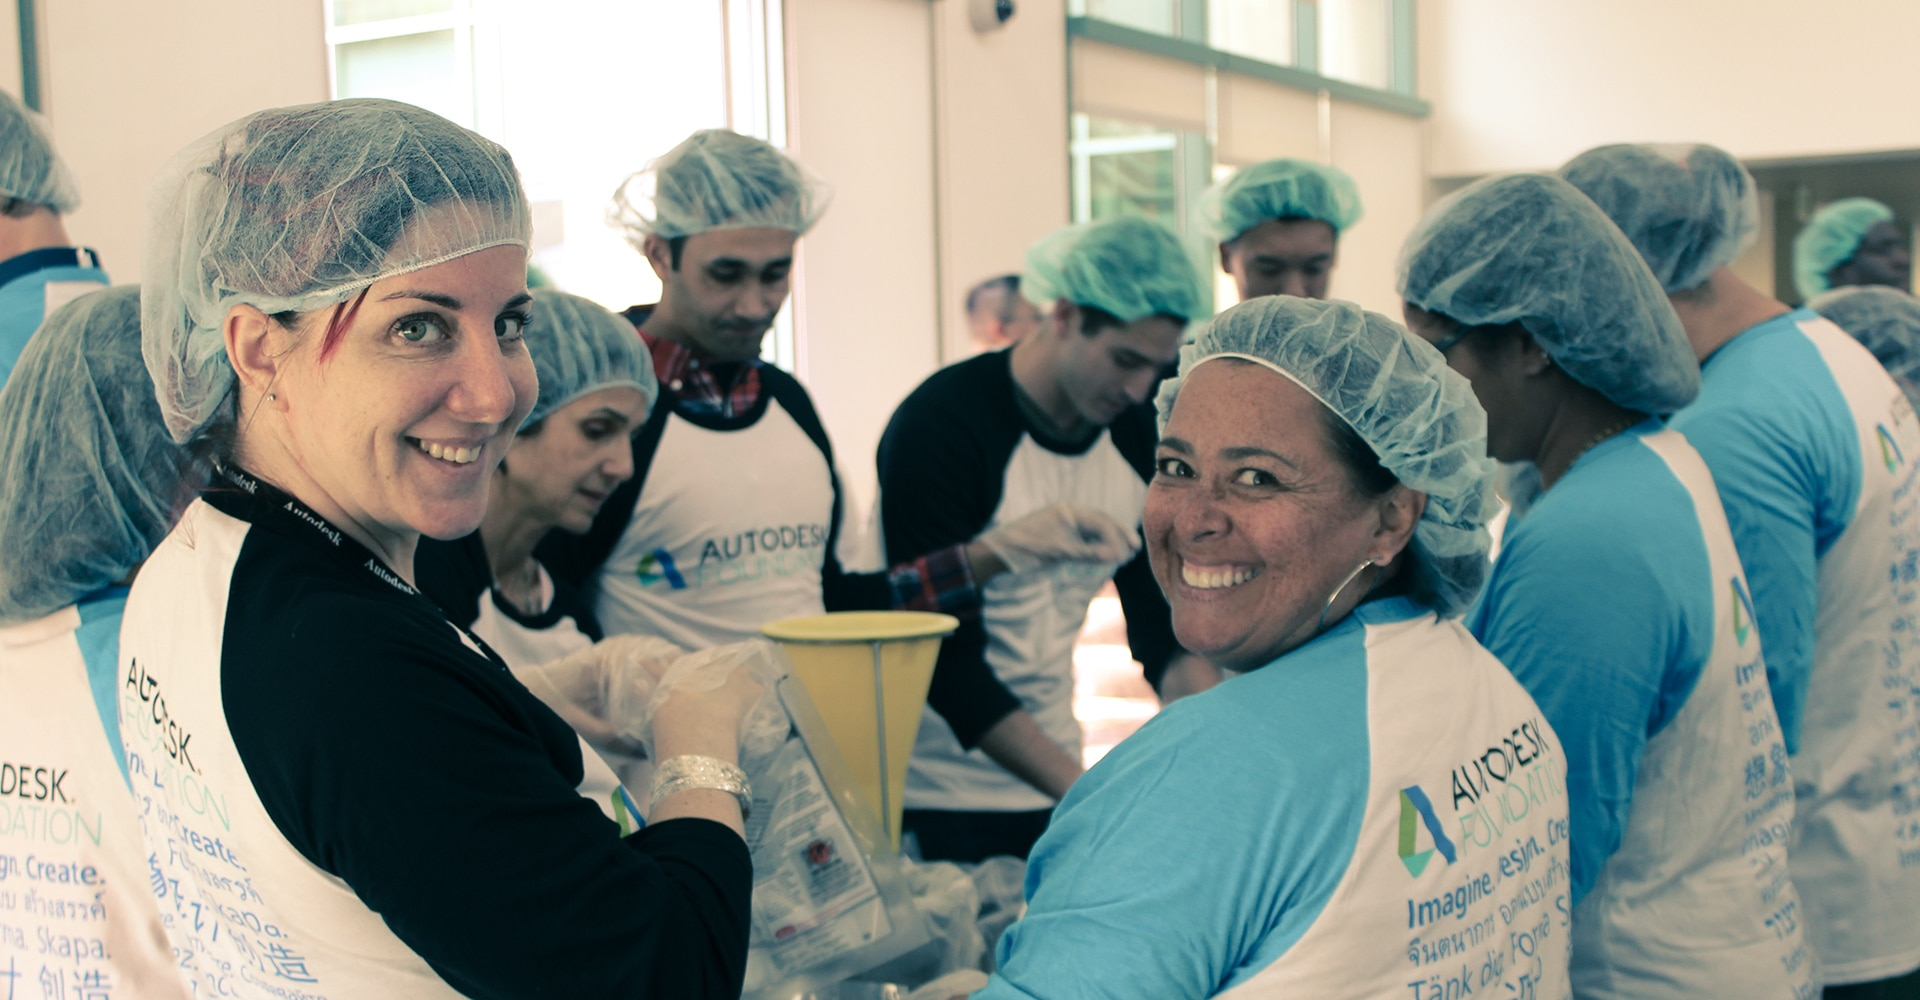 Autodesk employee engagement volunteers